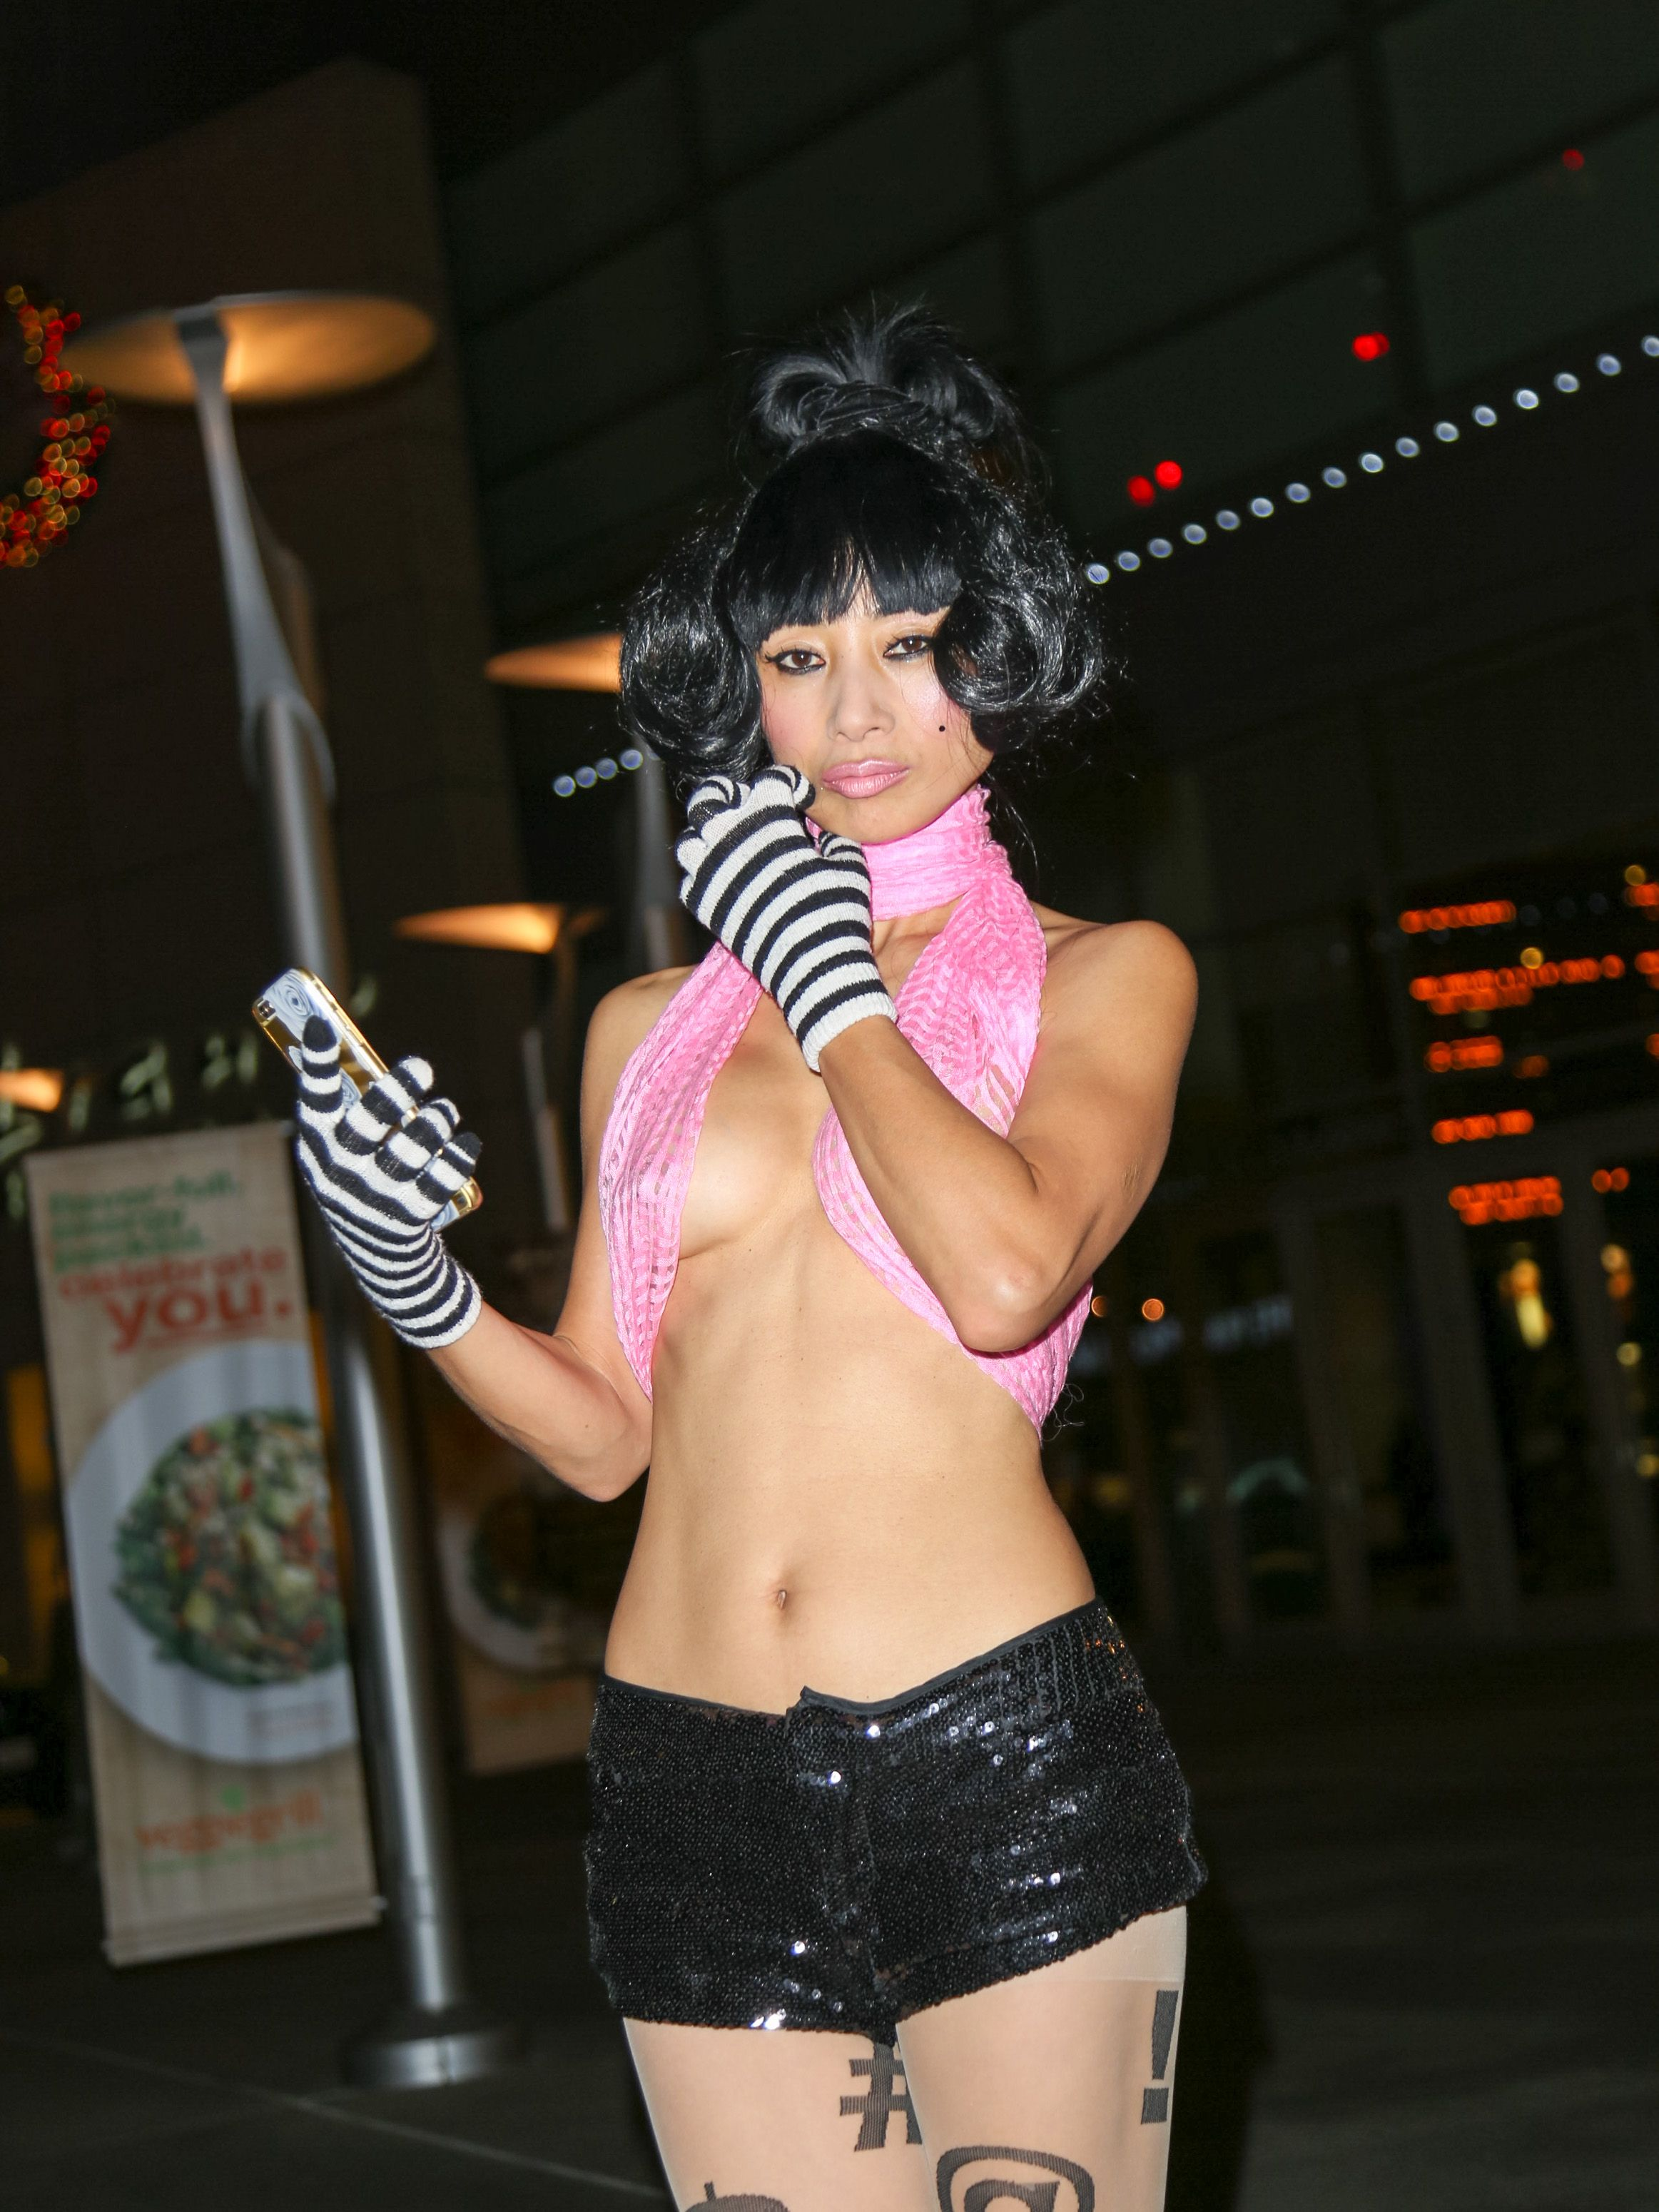 Hot Photos Of Bai Ling